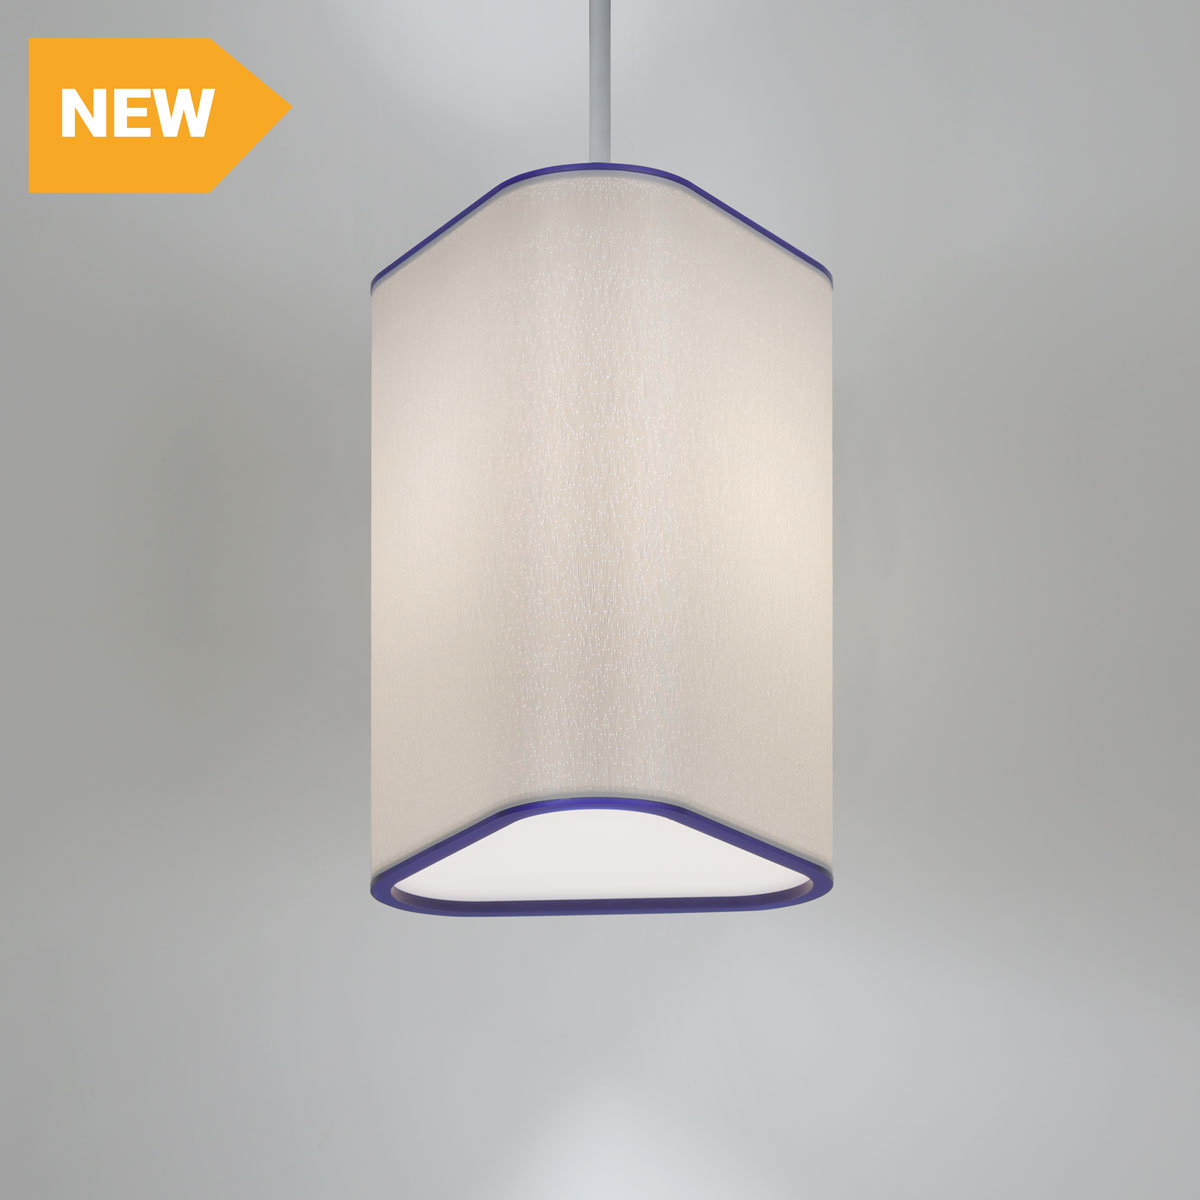 Stylish modern lighting with brilliant accent colors and distinctive geometric shapes; our VividLite pendants offer modern elegance, perfect ambient illumination and a flair for contemporary charm.